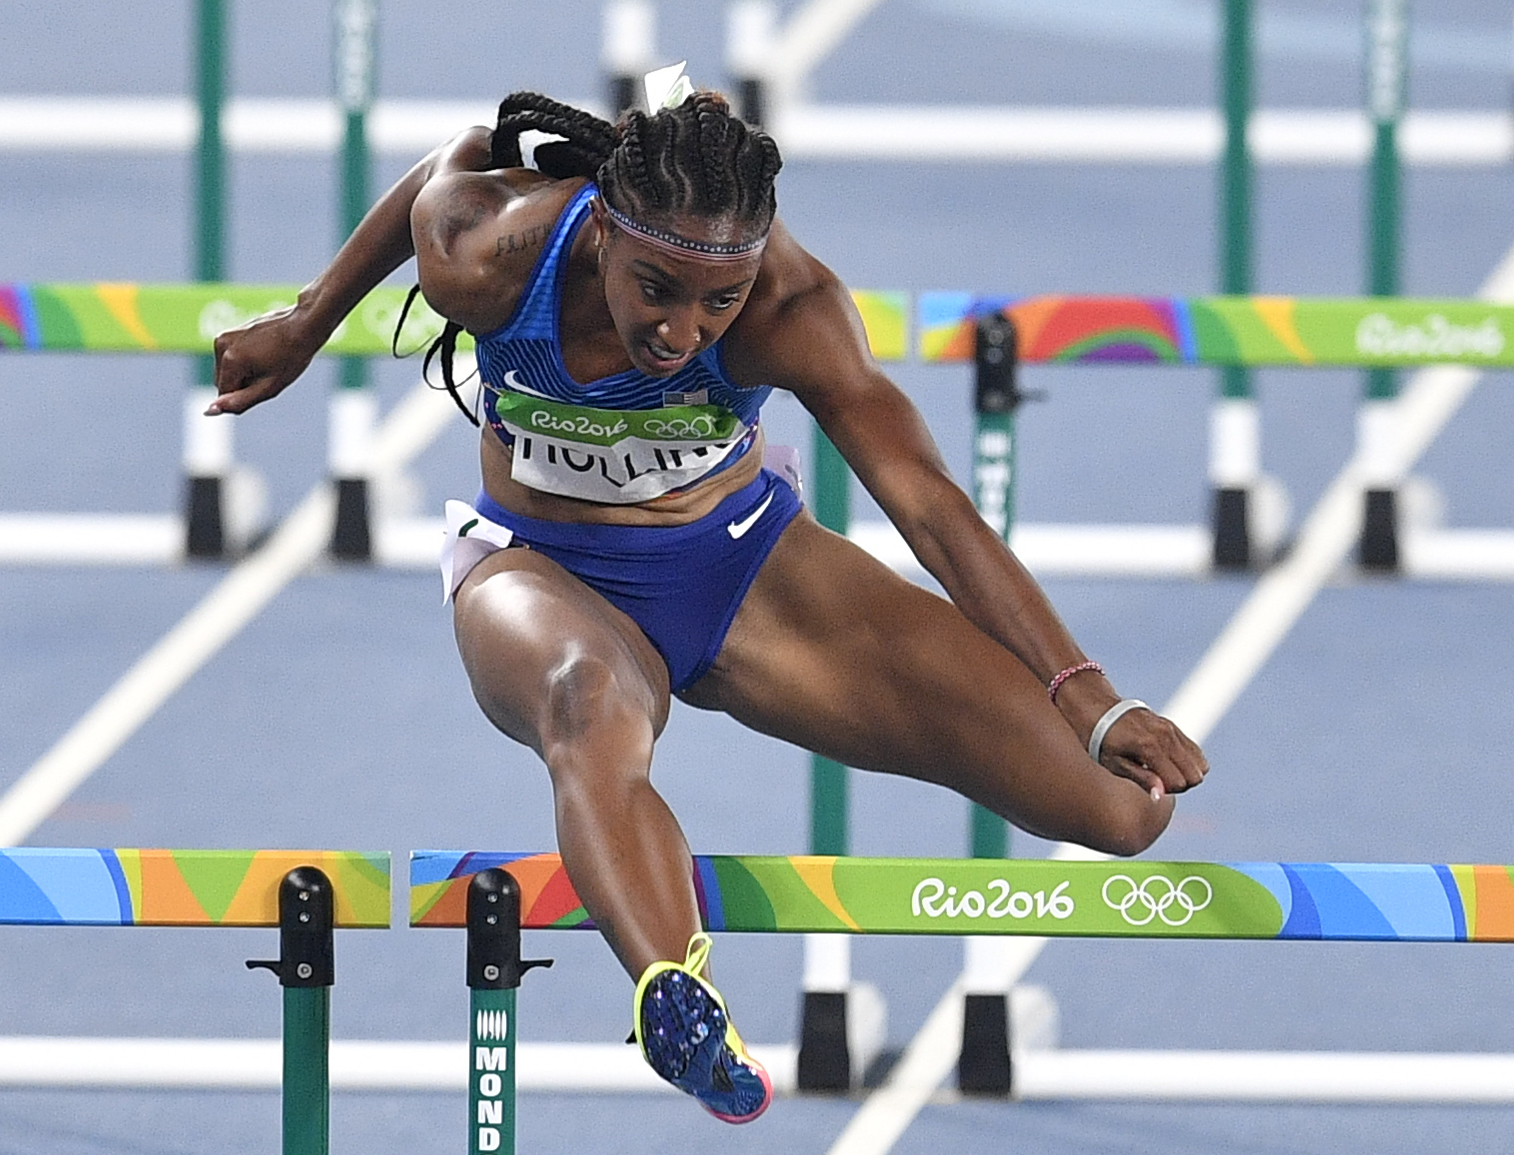 FILE - In this Aug. 17, 2016, file photo, United States' Brianna Rollins competes in the women's 100-meter hurdles final during the athletics competitions of the 2016 Summer Olympics at the Olympic stadium in Rio de Janeiro, Brazil. Rollins has received a